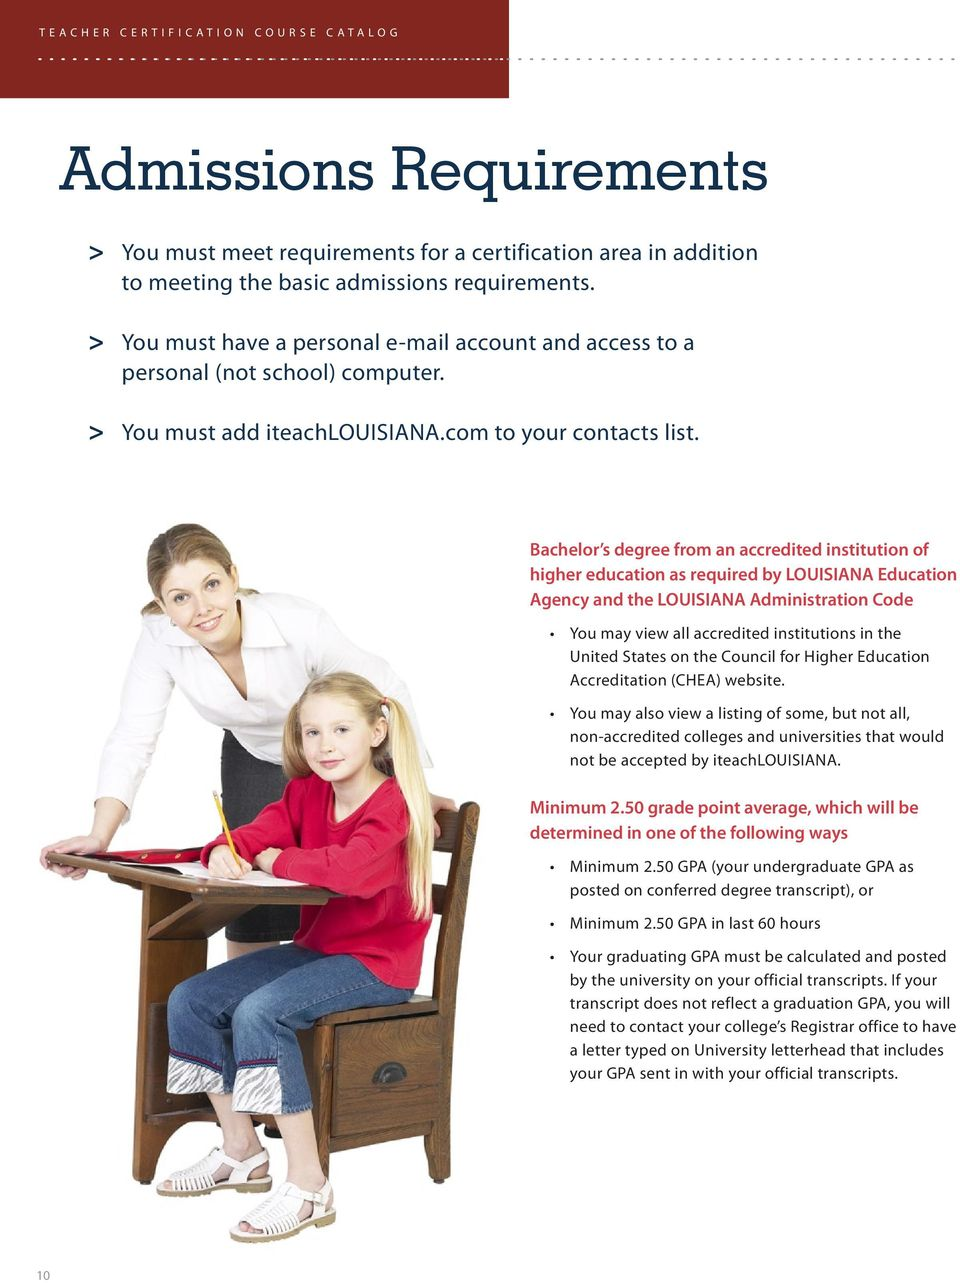 Bachelor s degree from an accredited institution of higher education as required by LOUISIANA Education Agency and the LOUISIANA Administration Code You may view all accredited institutions in the